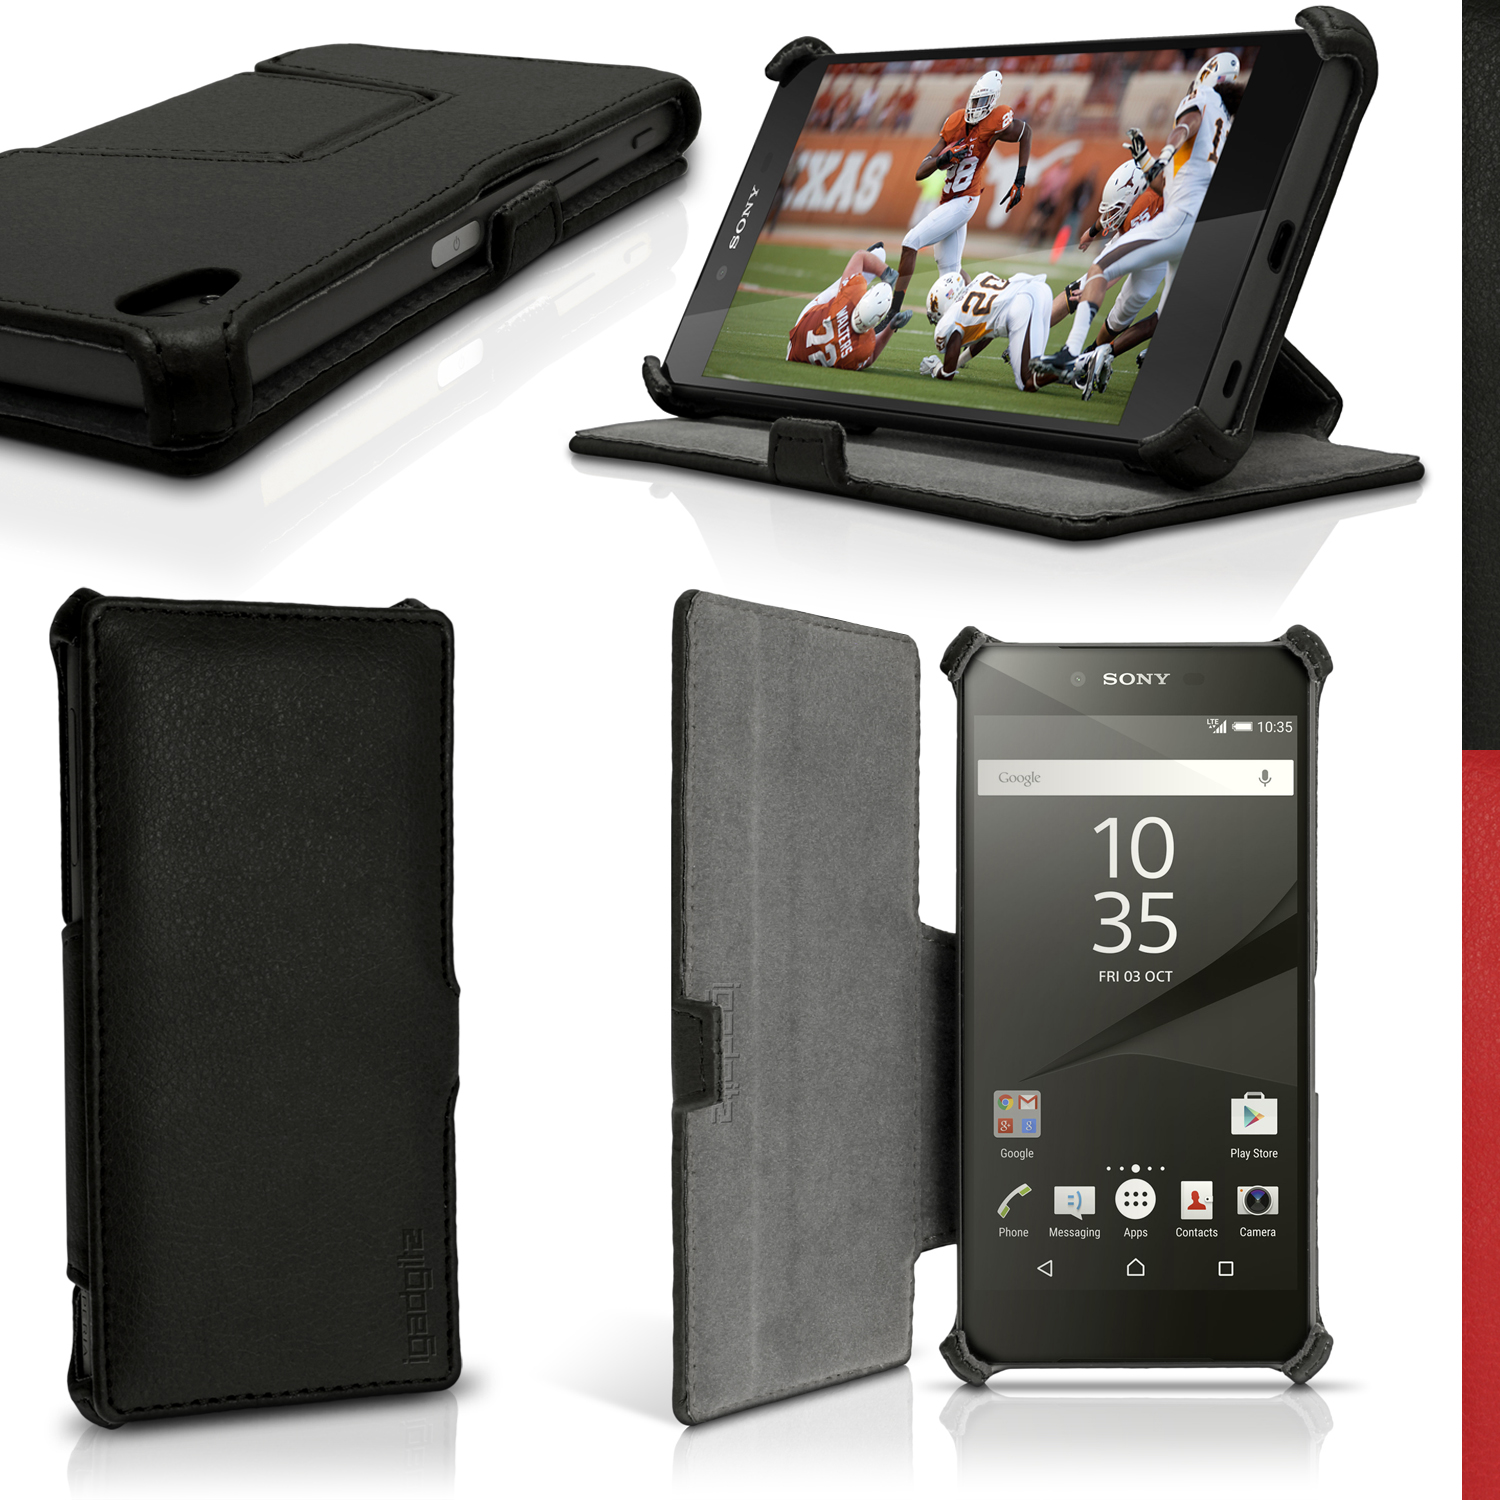 iGadgitz Folio PU Leather Case Cover for Sony Xperia Z5 E6603 with Multi-Angle Viewing Stand + Screen Protector